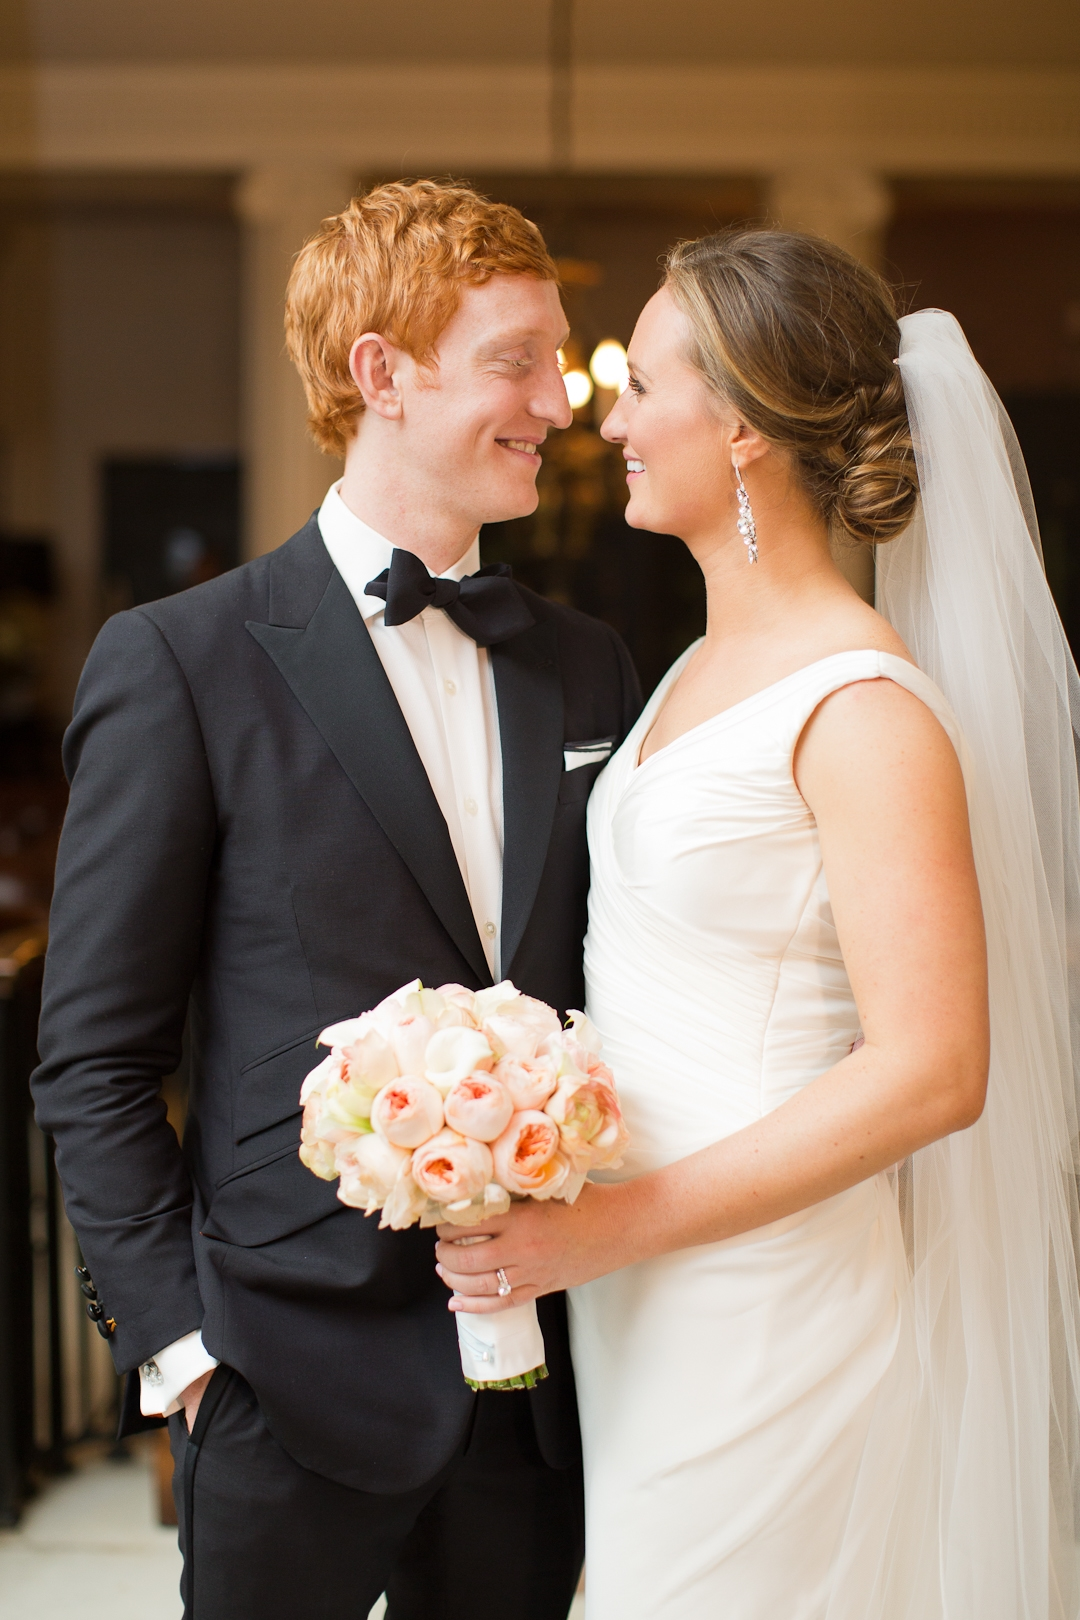 Melissa Kruse Photography - Ally & Jamey St. Saviours Church & Yale Club NYC Wedding (web)-685.jpg